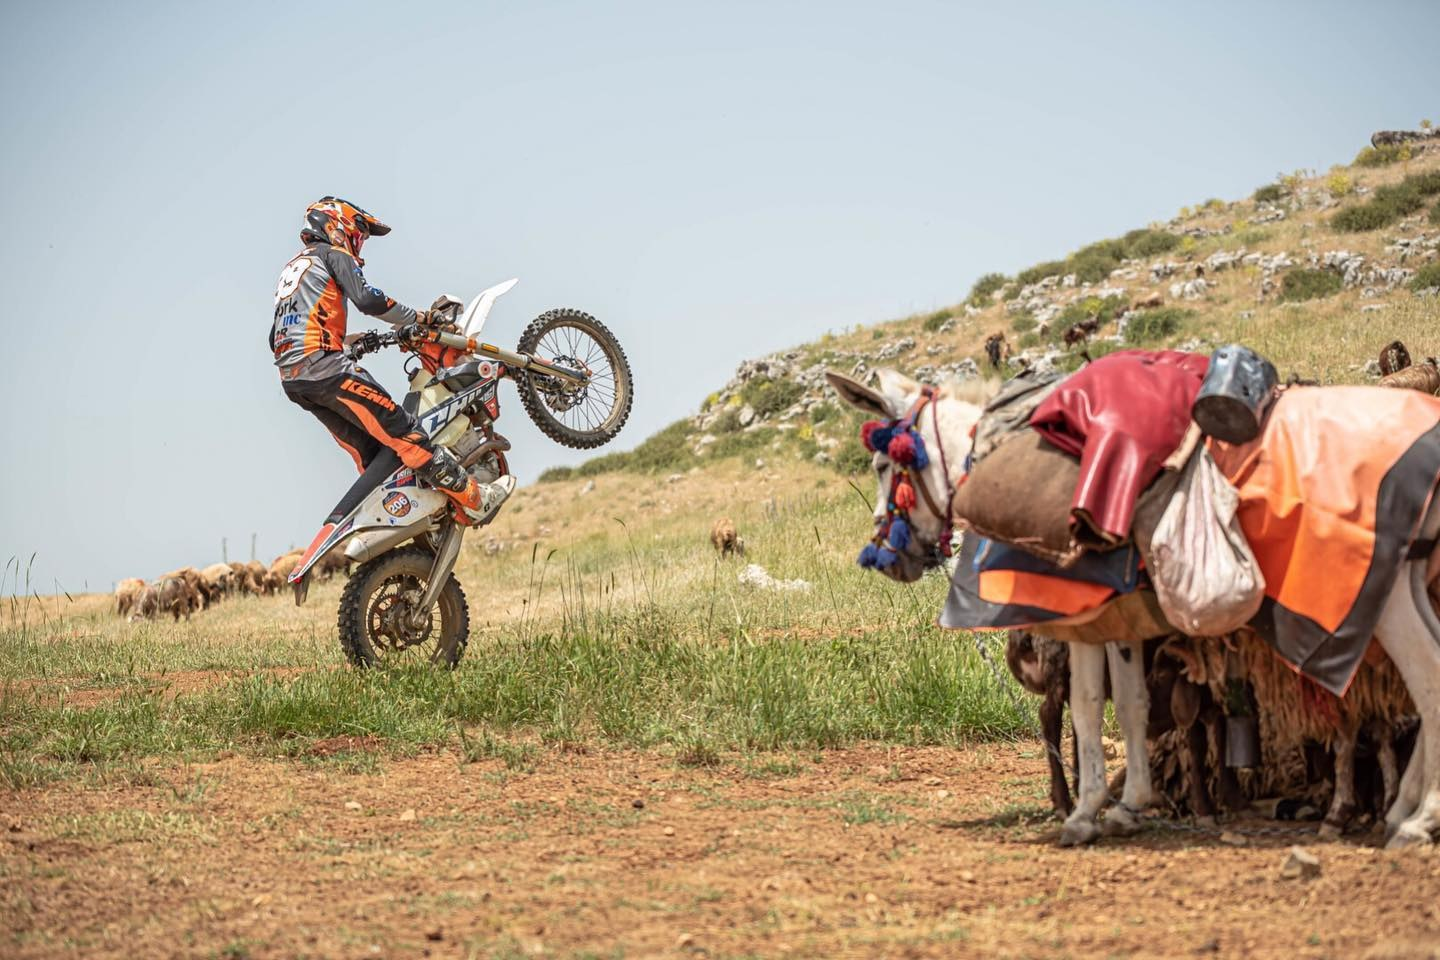 Romain Bouzigon benjamin Melot inside the athletes rally raid2